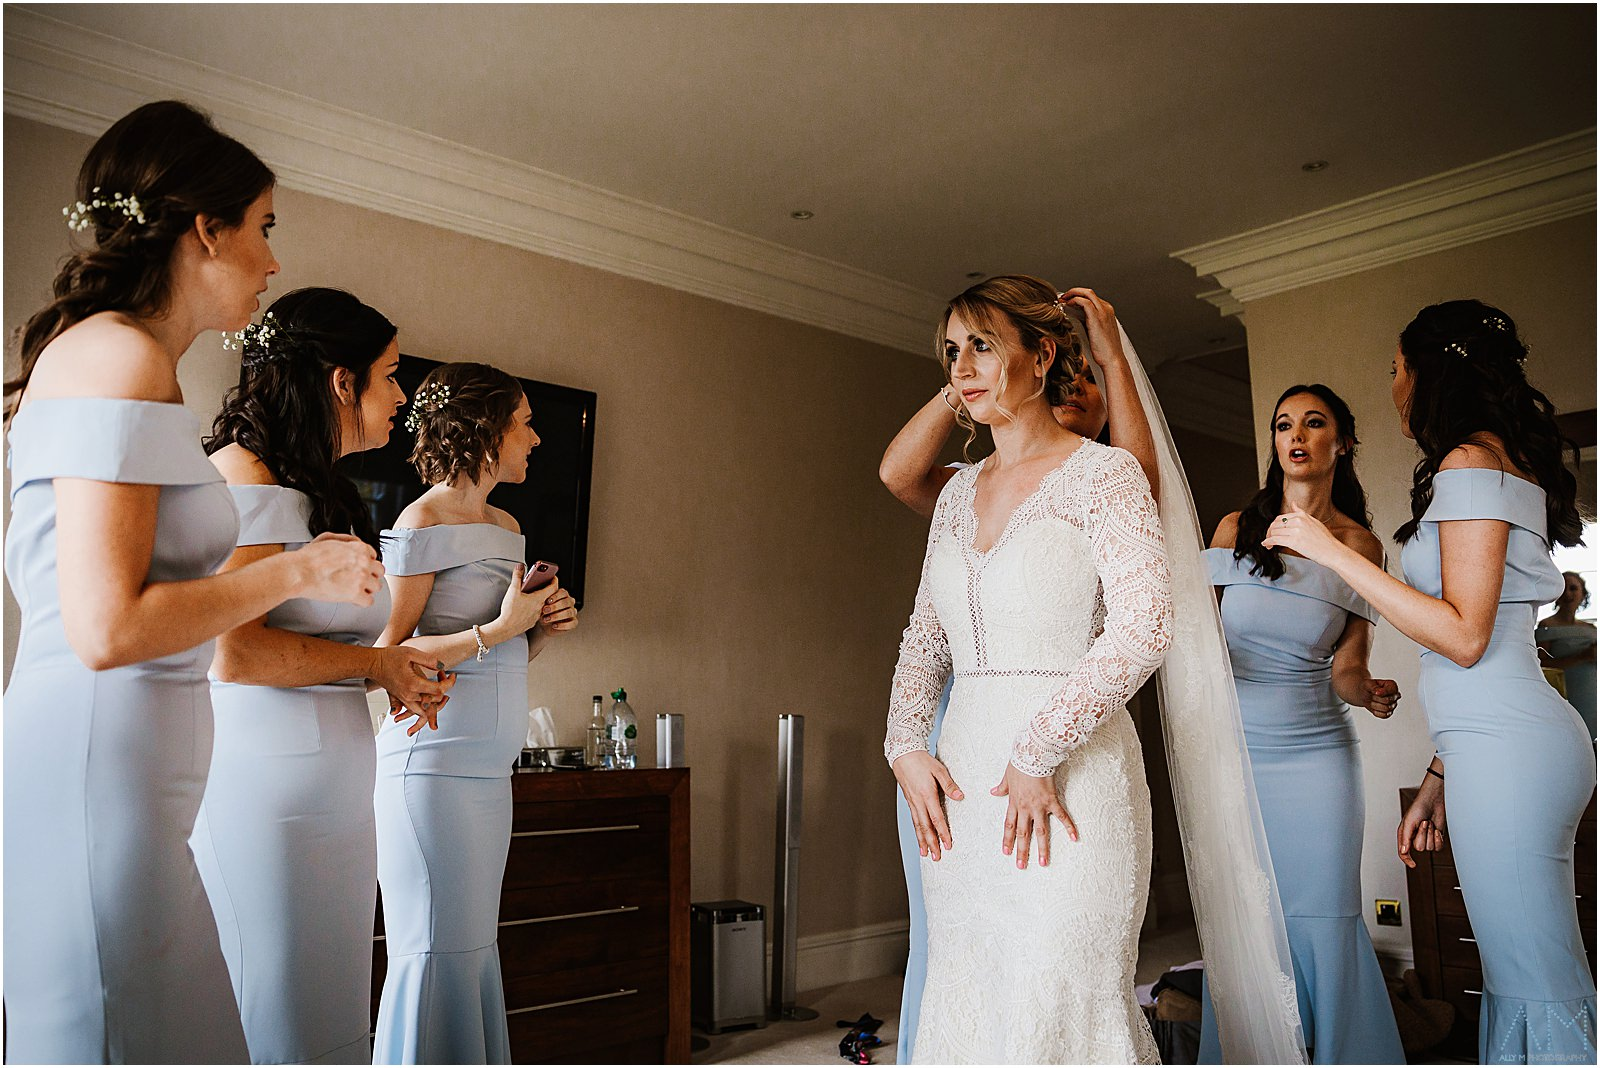 Bride getting help with her wedding dress from the bridesmaids